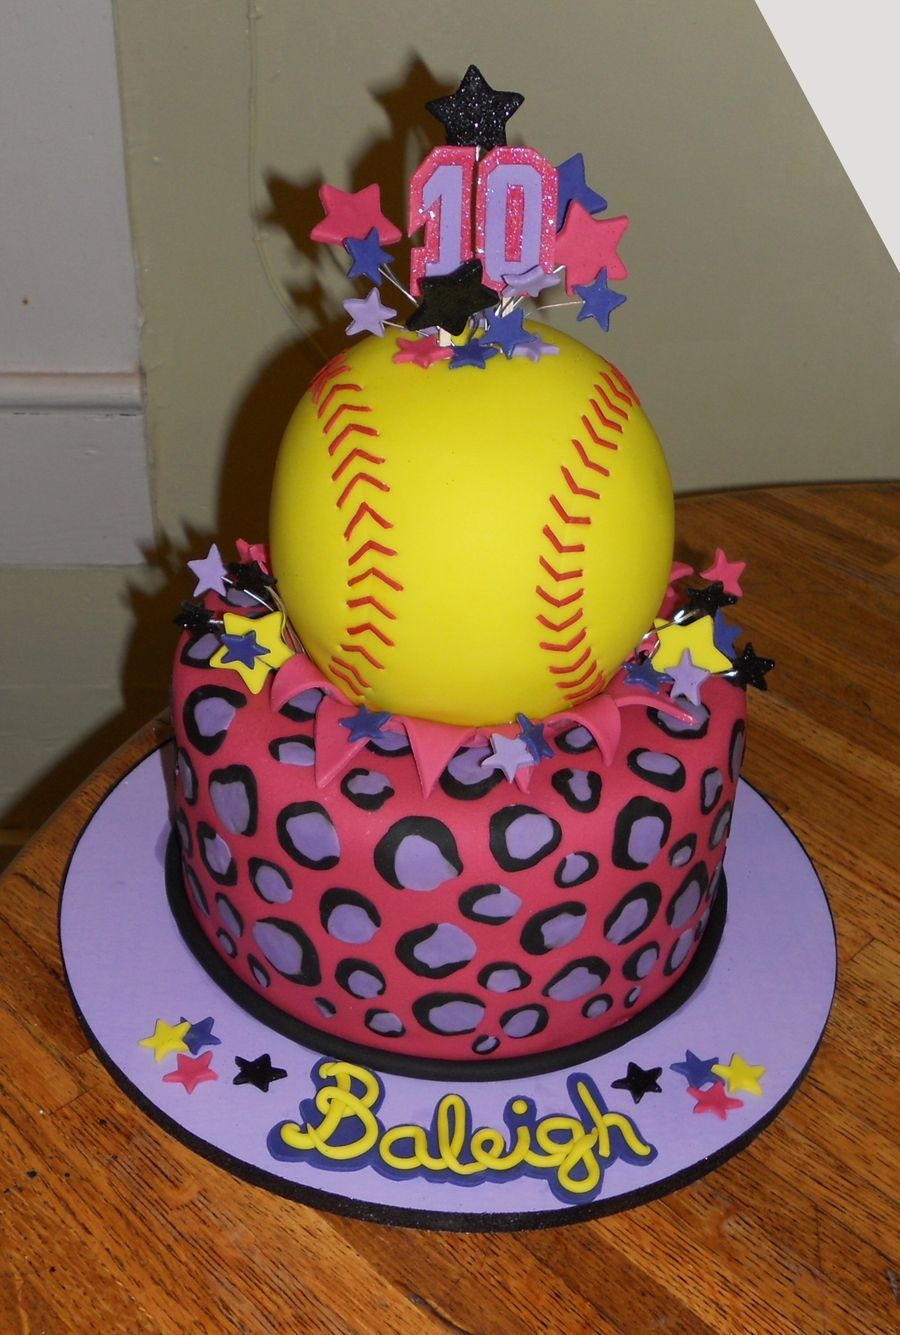 Softball  Chevron Stacked Cake Cakes Cupcakes  Sweets - 11th birthday cake ideas